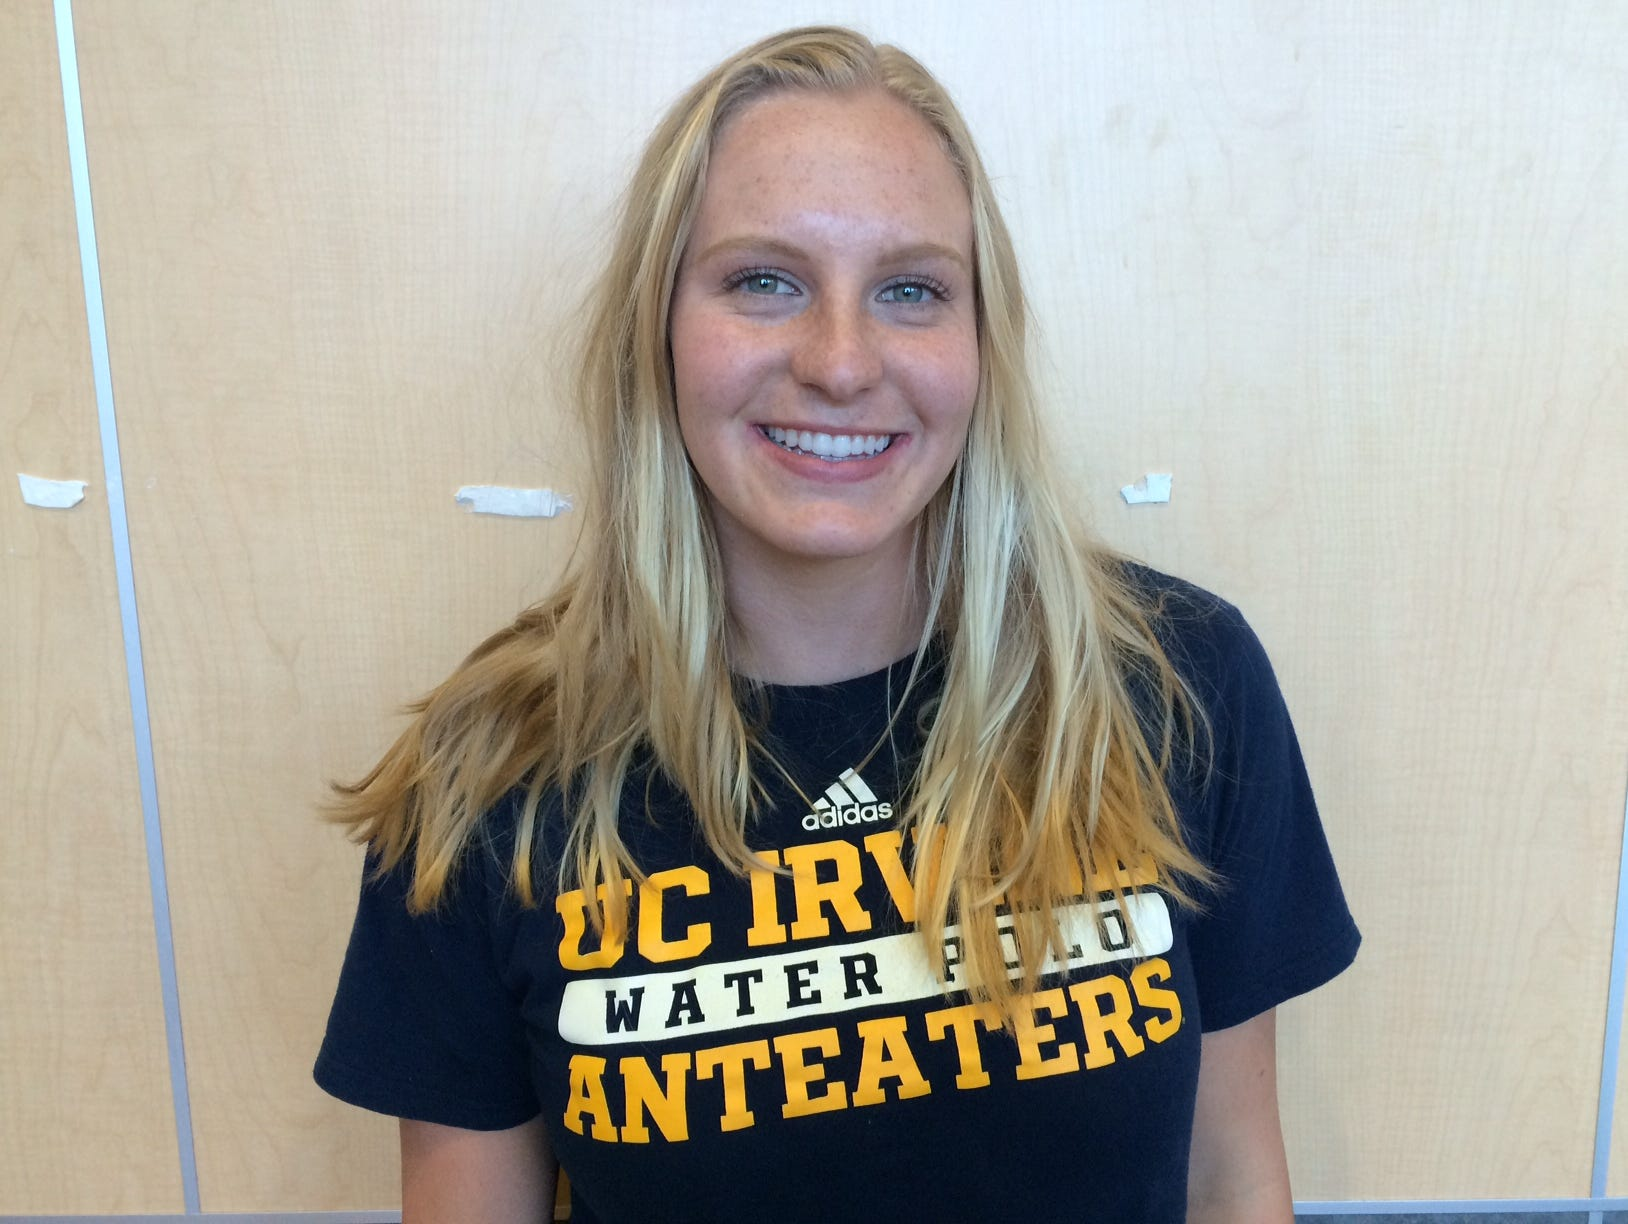 Palm Desert senior Sarah Nichols signed her national letter of intent Wednesday to play water polo for UC Irvine.